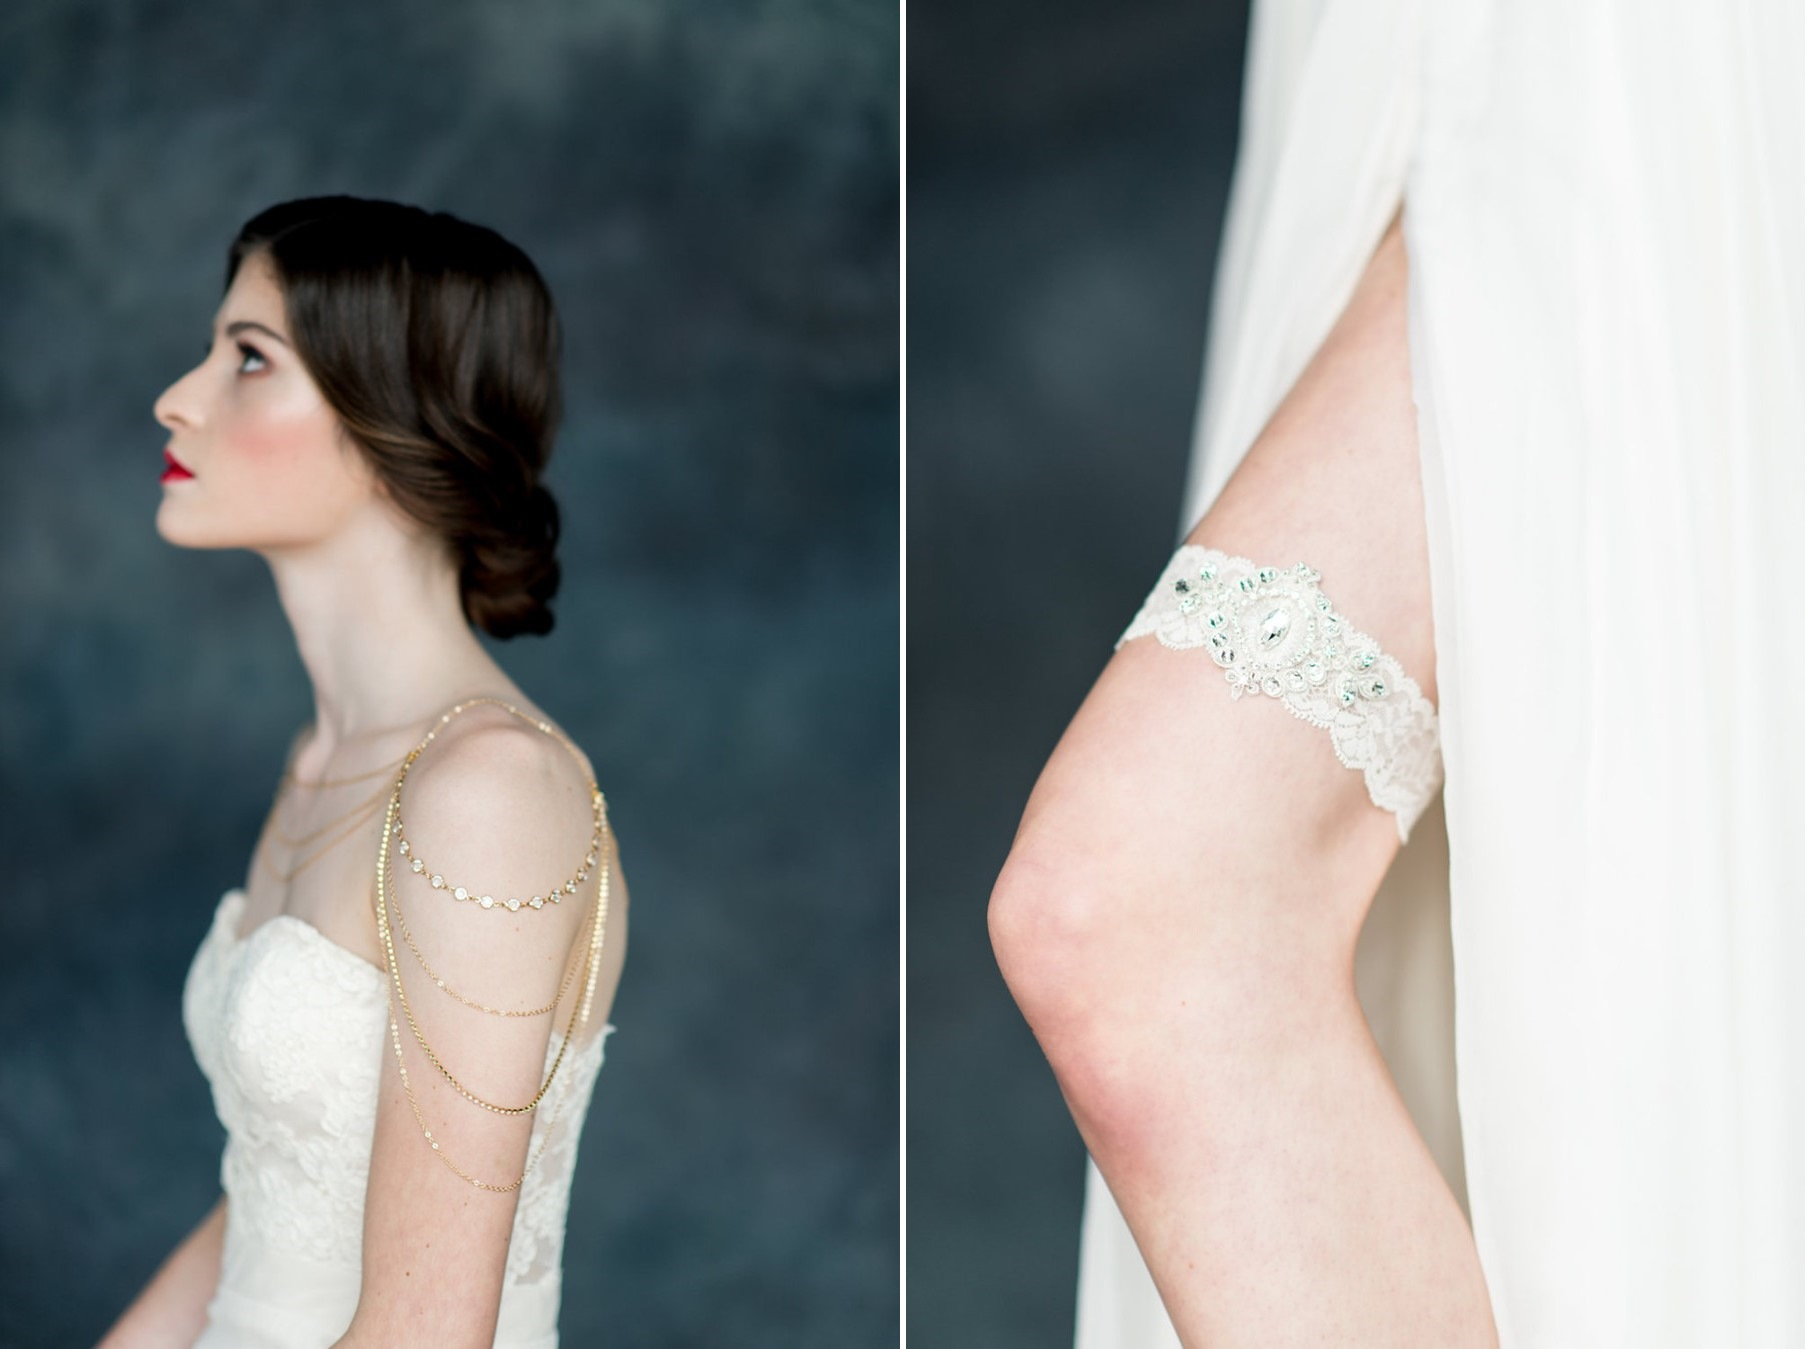 Shoulder Jewelry & Bridal Garter from Blair Nadeau Indigo & Lucinda